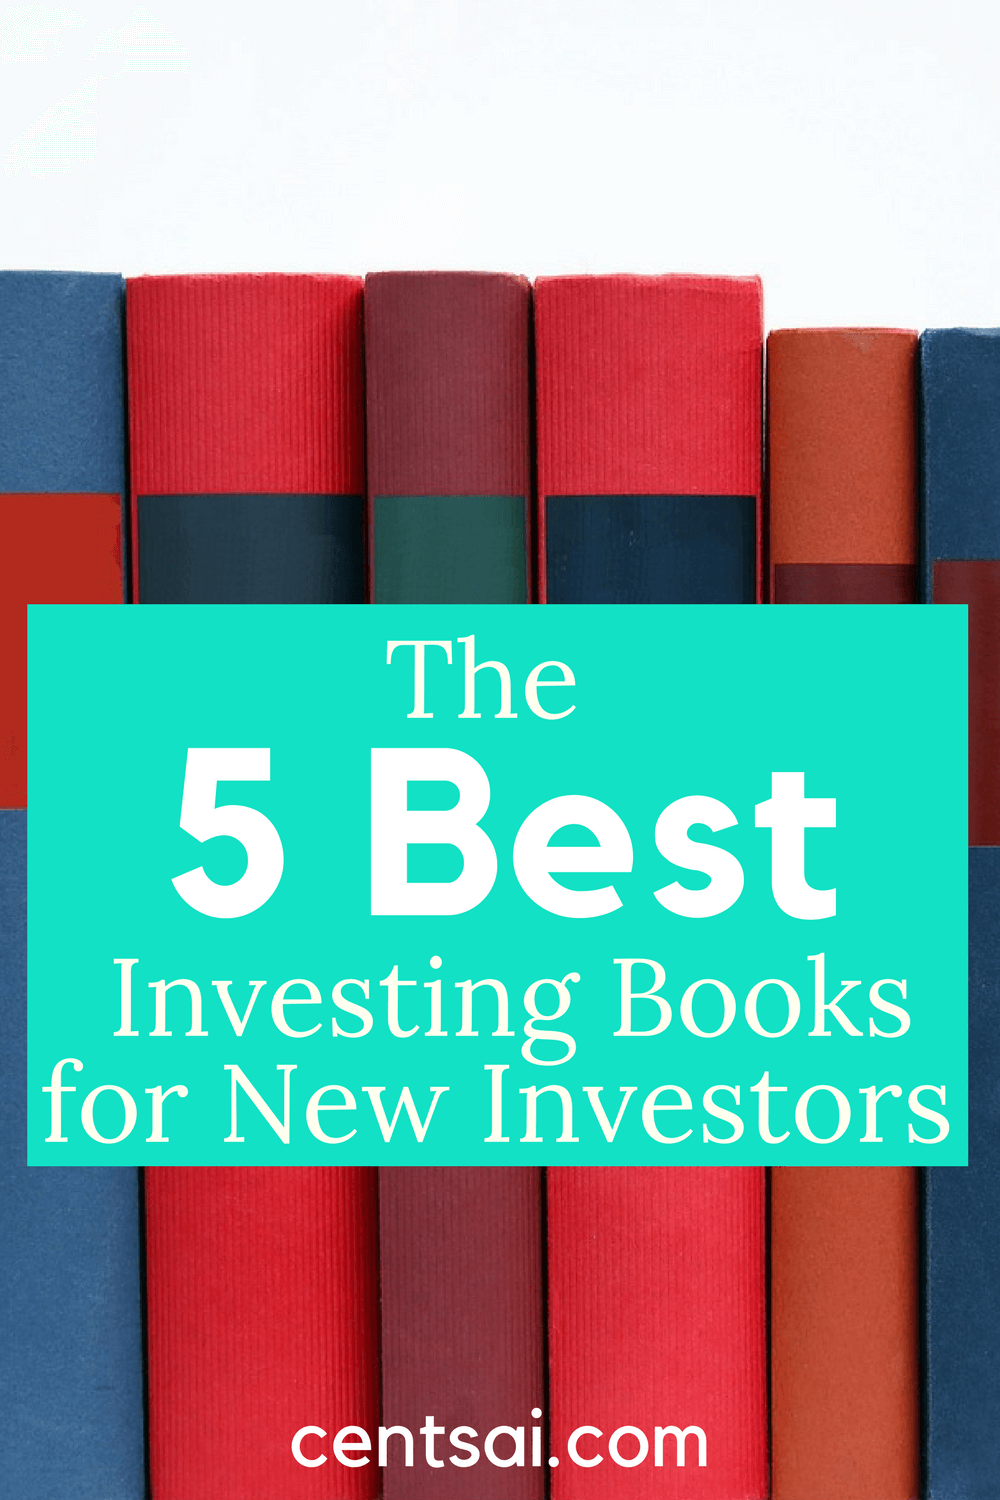 The 5 Best Investing Books for New Investors